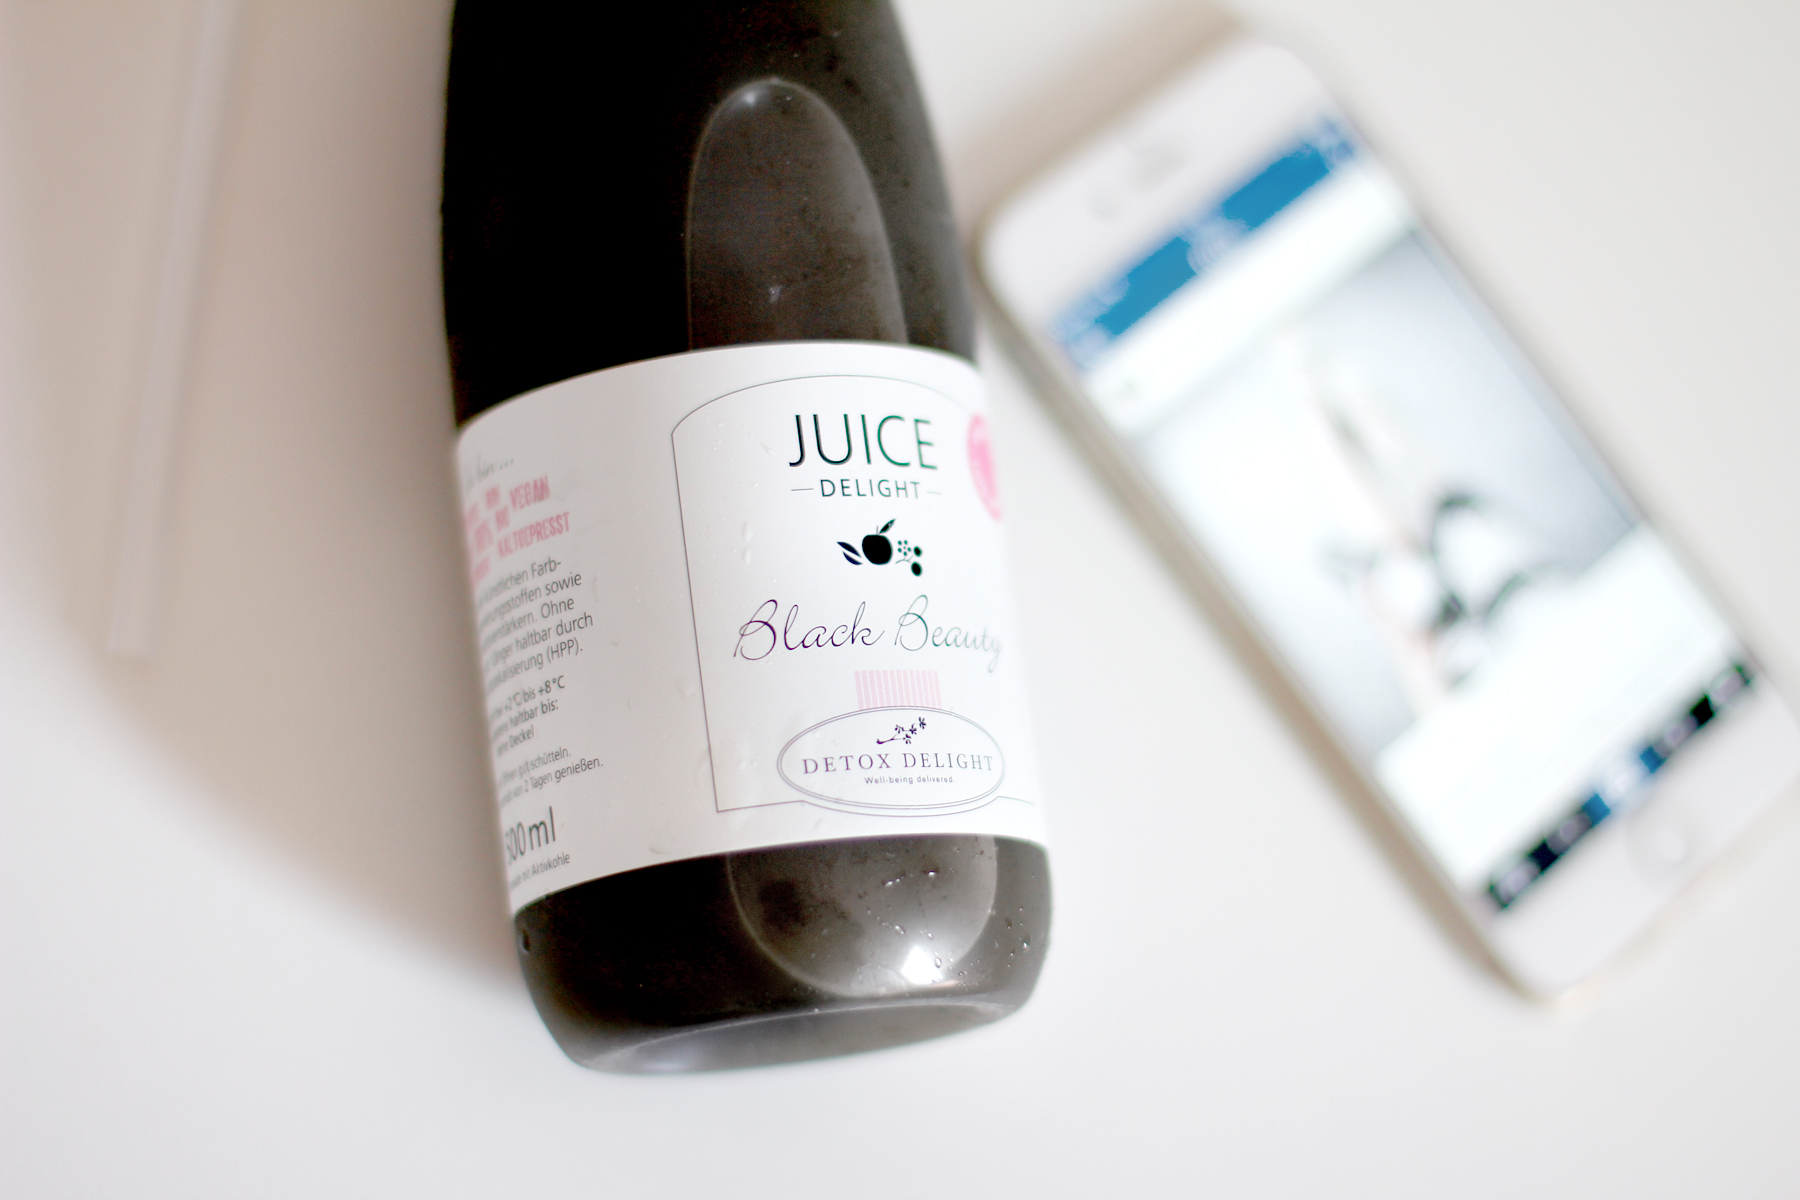 detox delight juice delight easy juice cleanse saftkur entgiften münchen kaltgepresst bio säfte saft cold pressed ricarda schernus cats & dogs lifestyle blog fashion blog 4